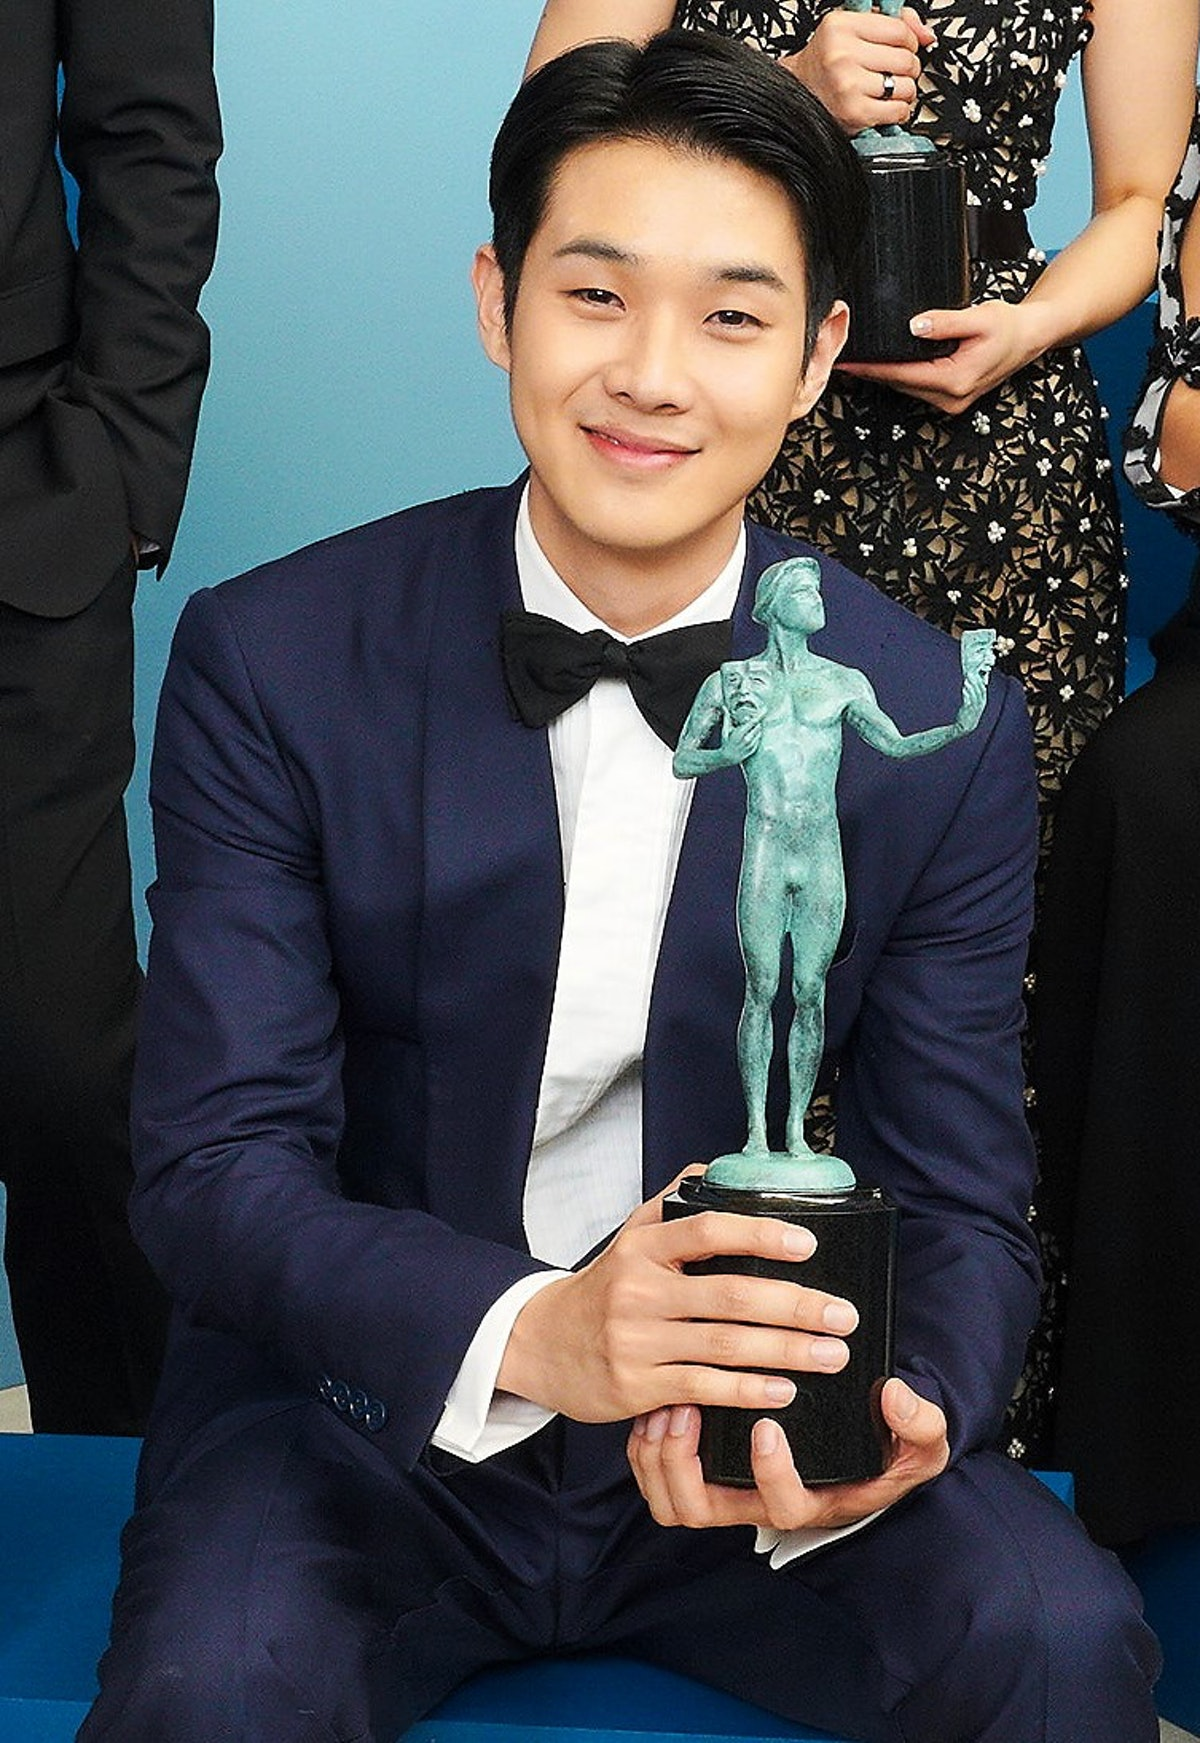 BTS' friends outside of the group include 'Parasite' actor Choi Woo-shik.